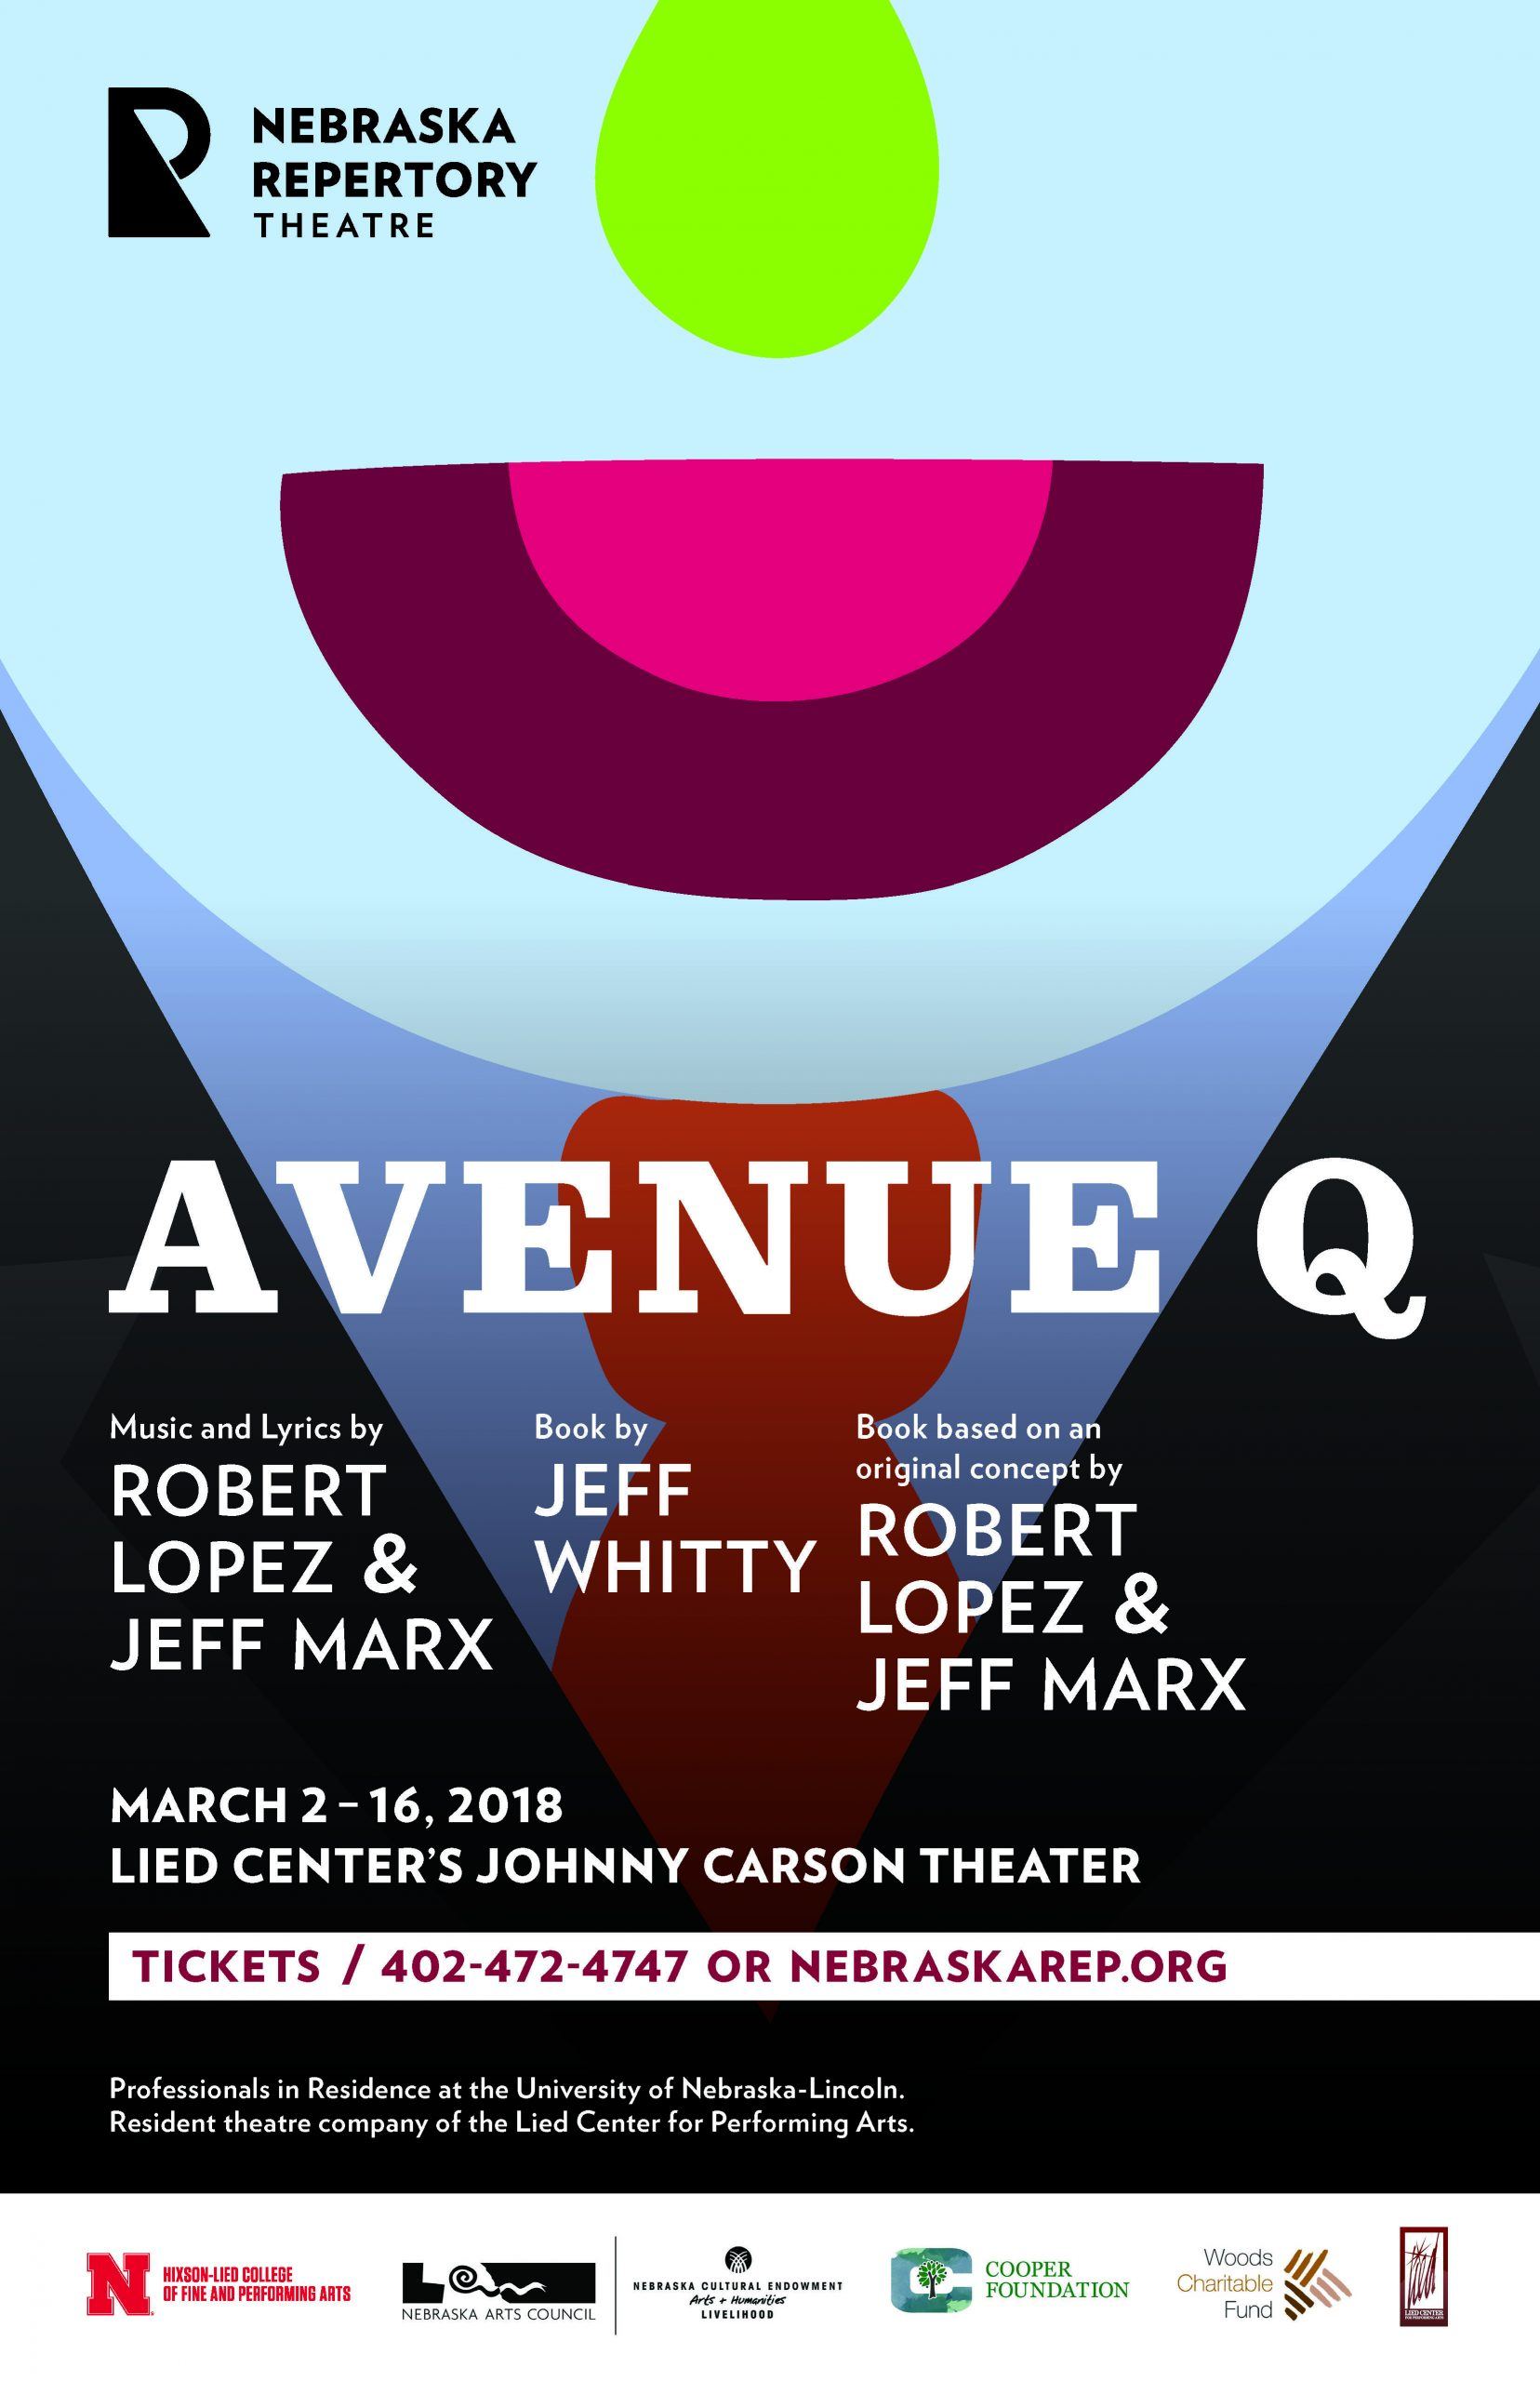 """A headline reading """"Avenue Q"""" is overlaid over a graphic illustration of the bottom half of a muppet's face, a suit and tie visible below its chin."""